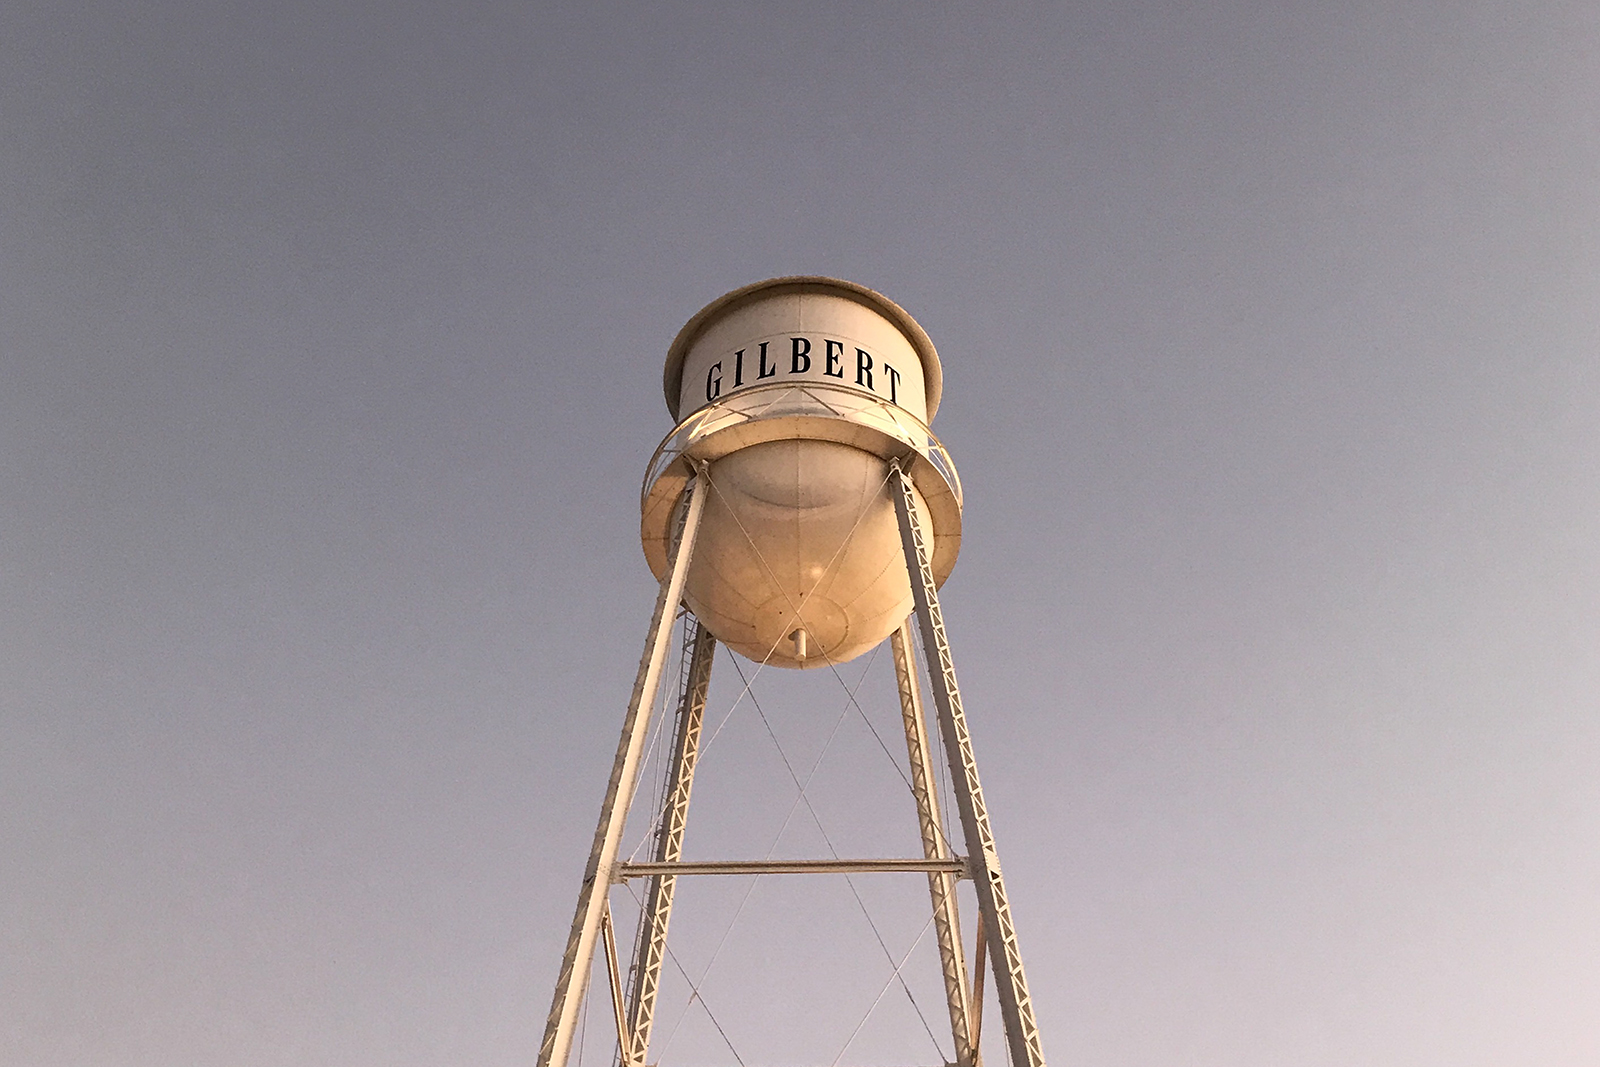 Gilbert arizona water tower